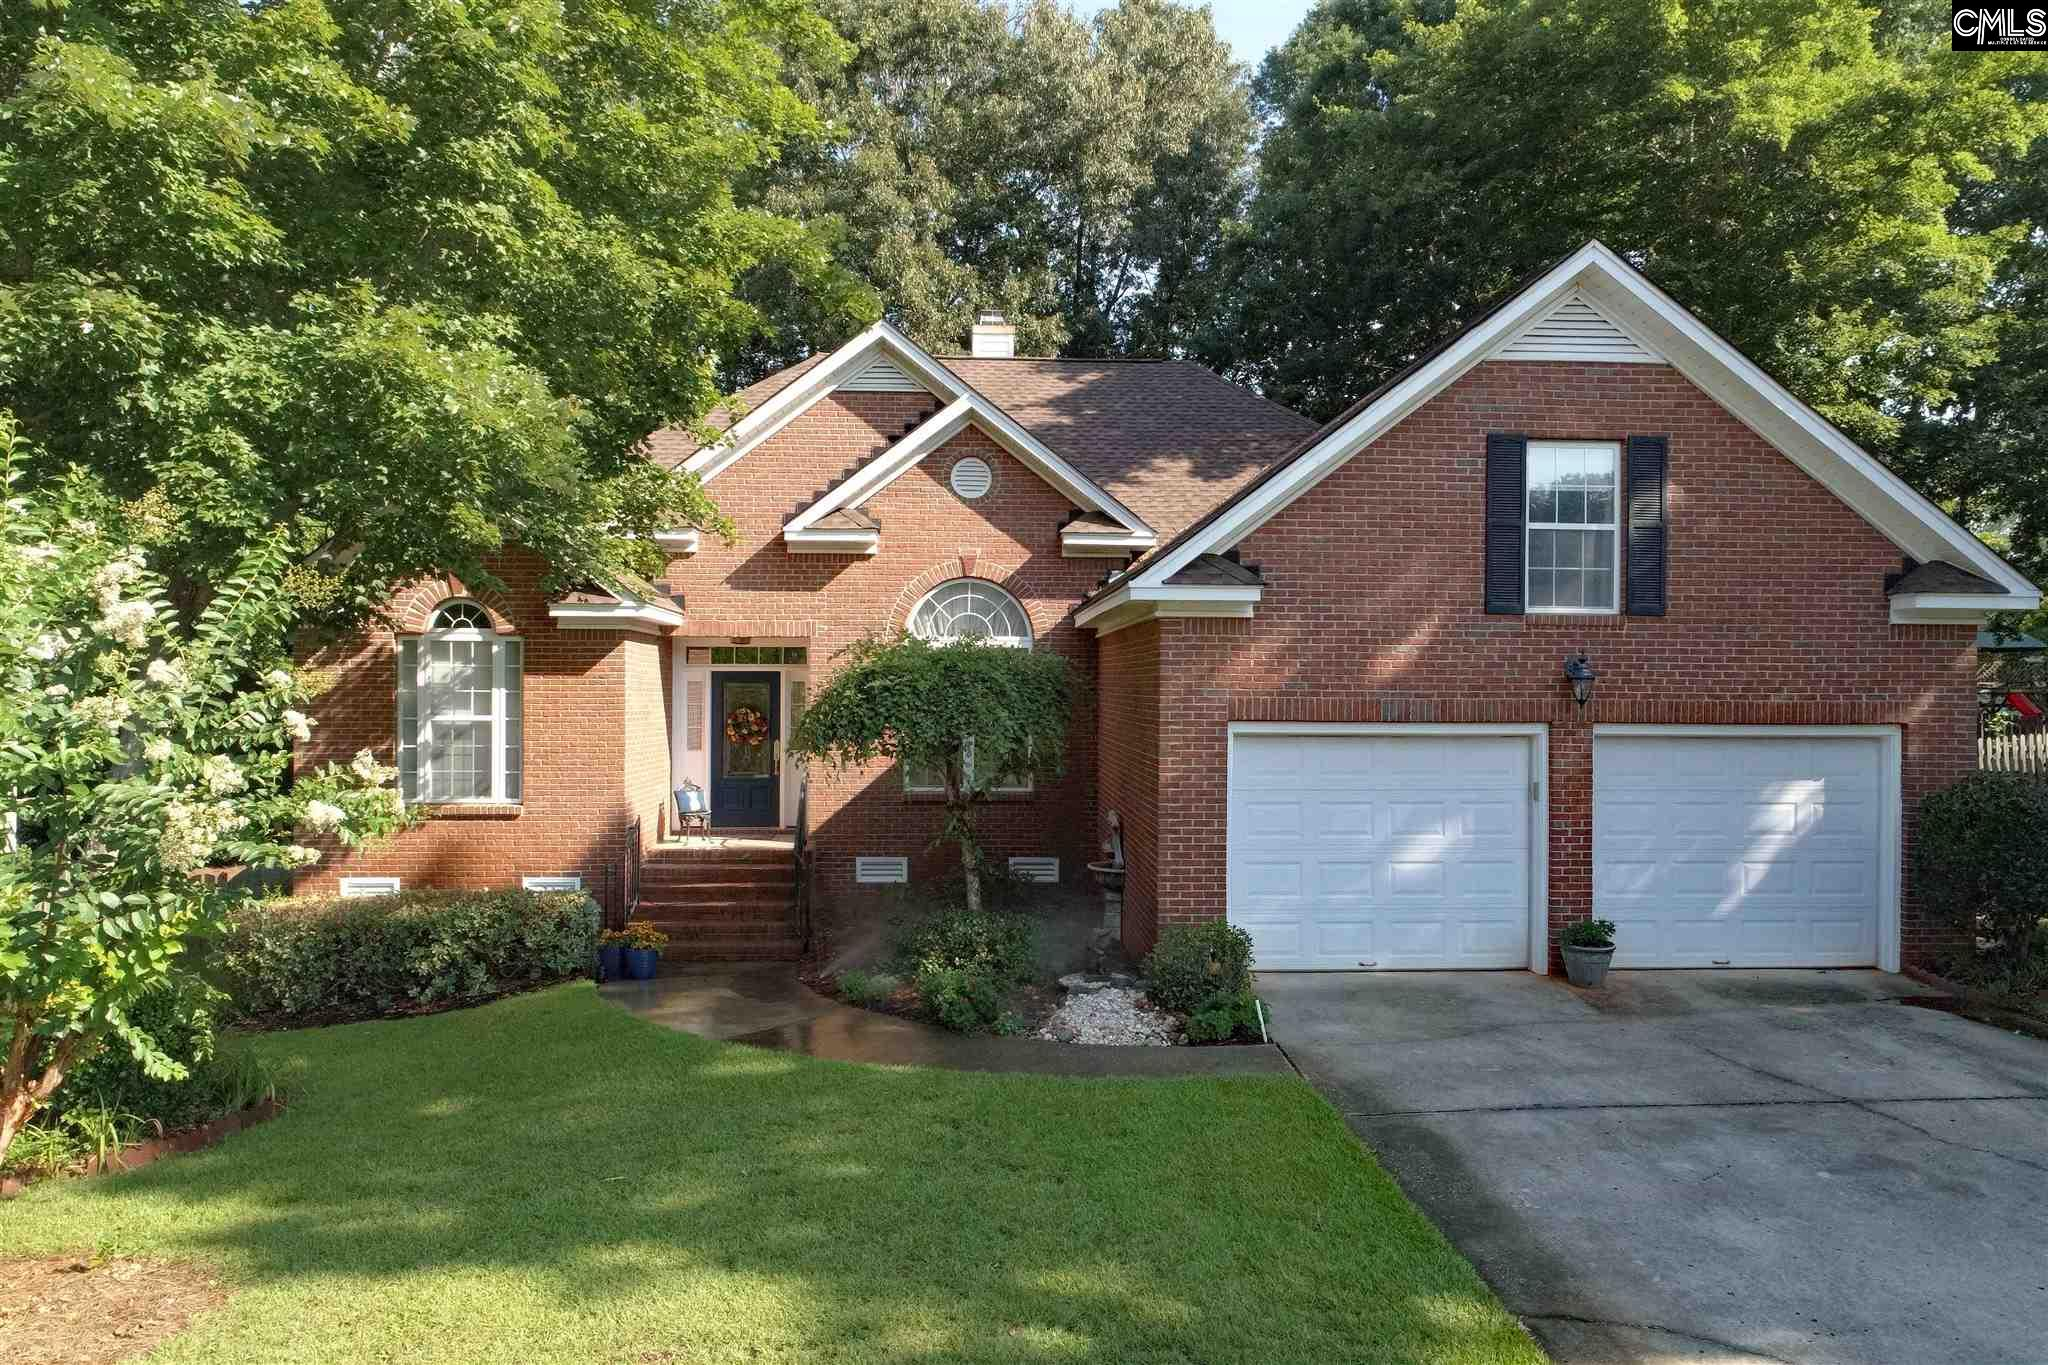 123 Chestnut Woods Columbia, SC 29212